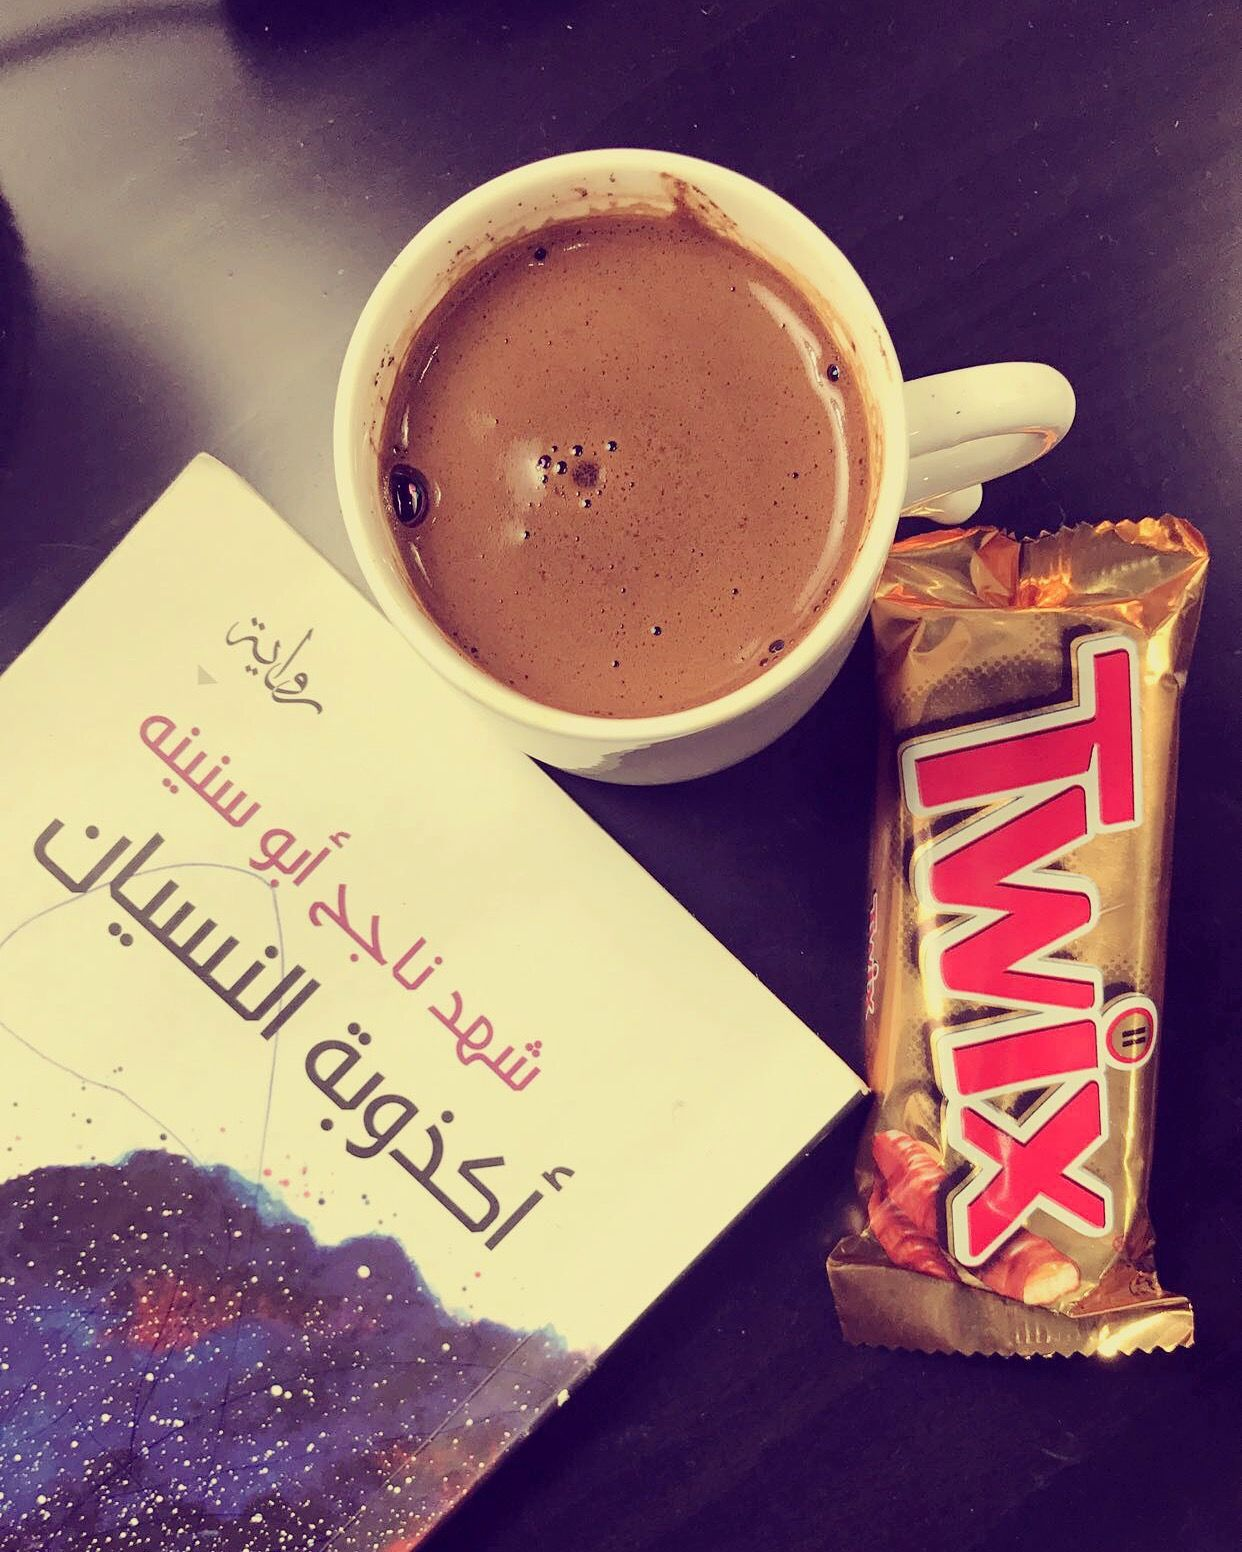 Pin By Yasmine Lila On رواق Book Qoutes Coffee And Books Book Names